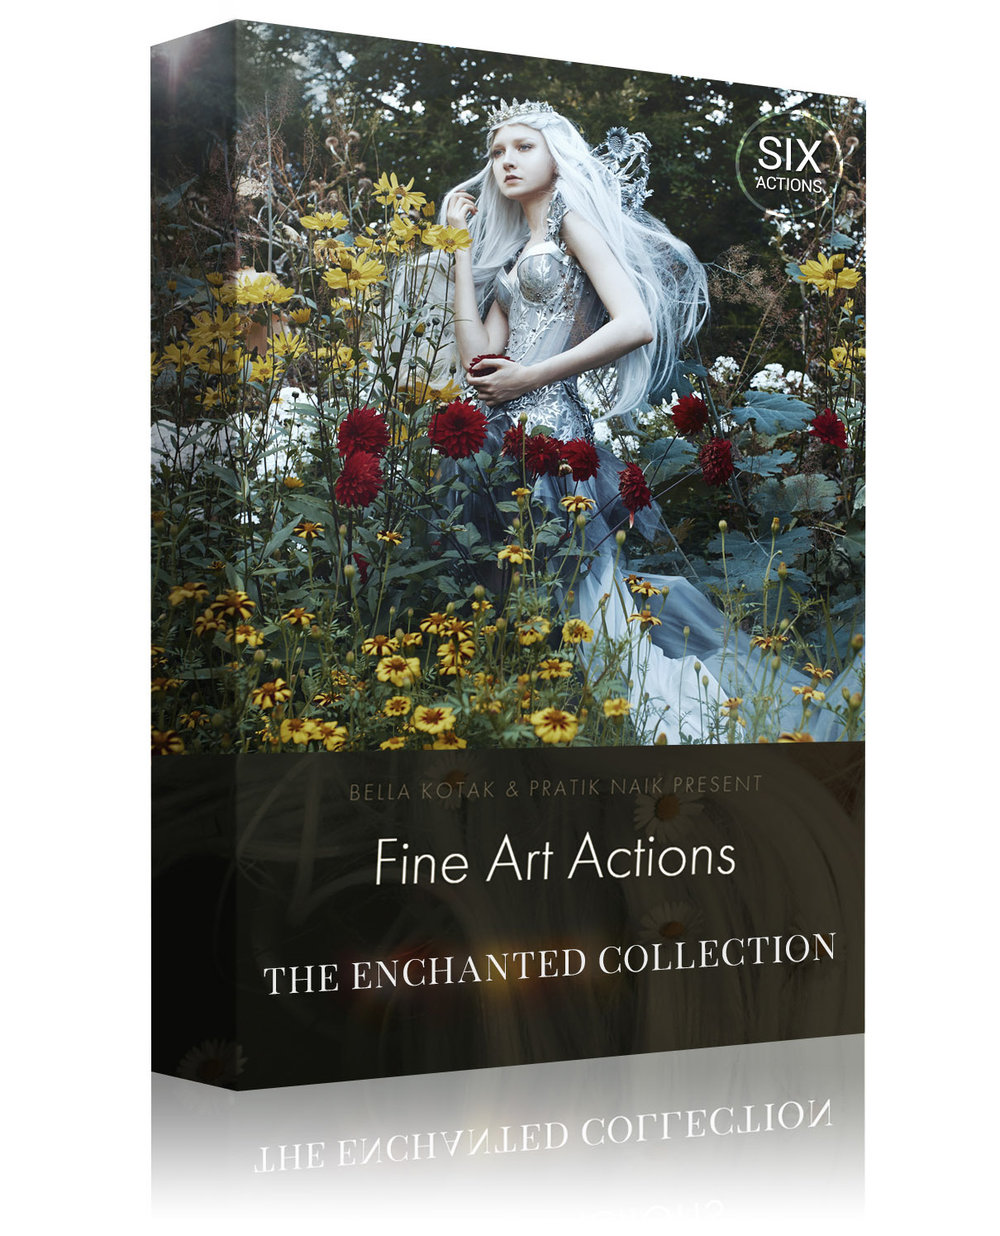 Box Design - The Enchanted Collection-1.jpg